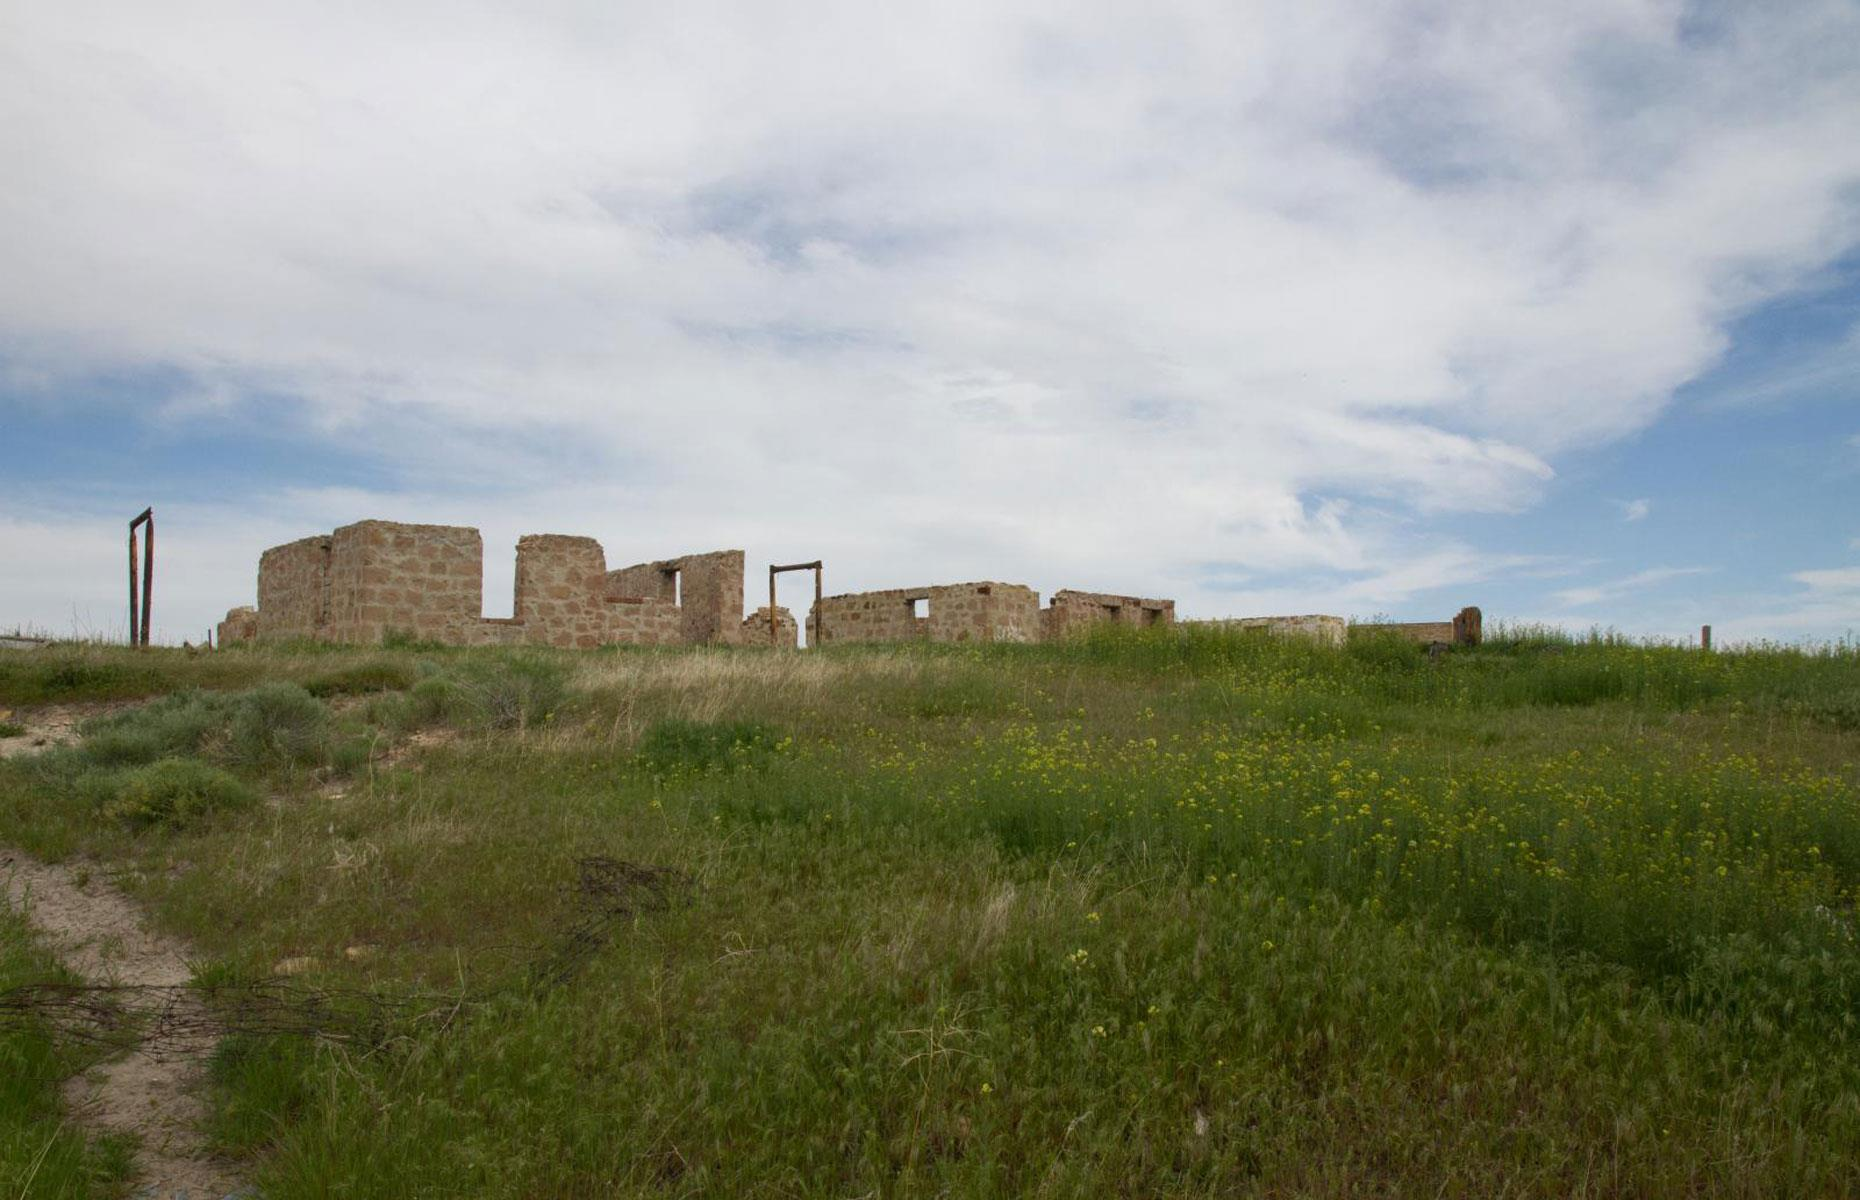 Slide 100 of 101: This remote ghost town near Thermopolis was founded in 1907. The coal mining town grew fast, and had a population of 20,000 at its peak. But the boom didn't last and Gebo was mostly abandoned in 1938 when mining in the area ceased.